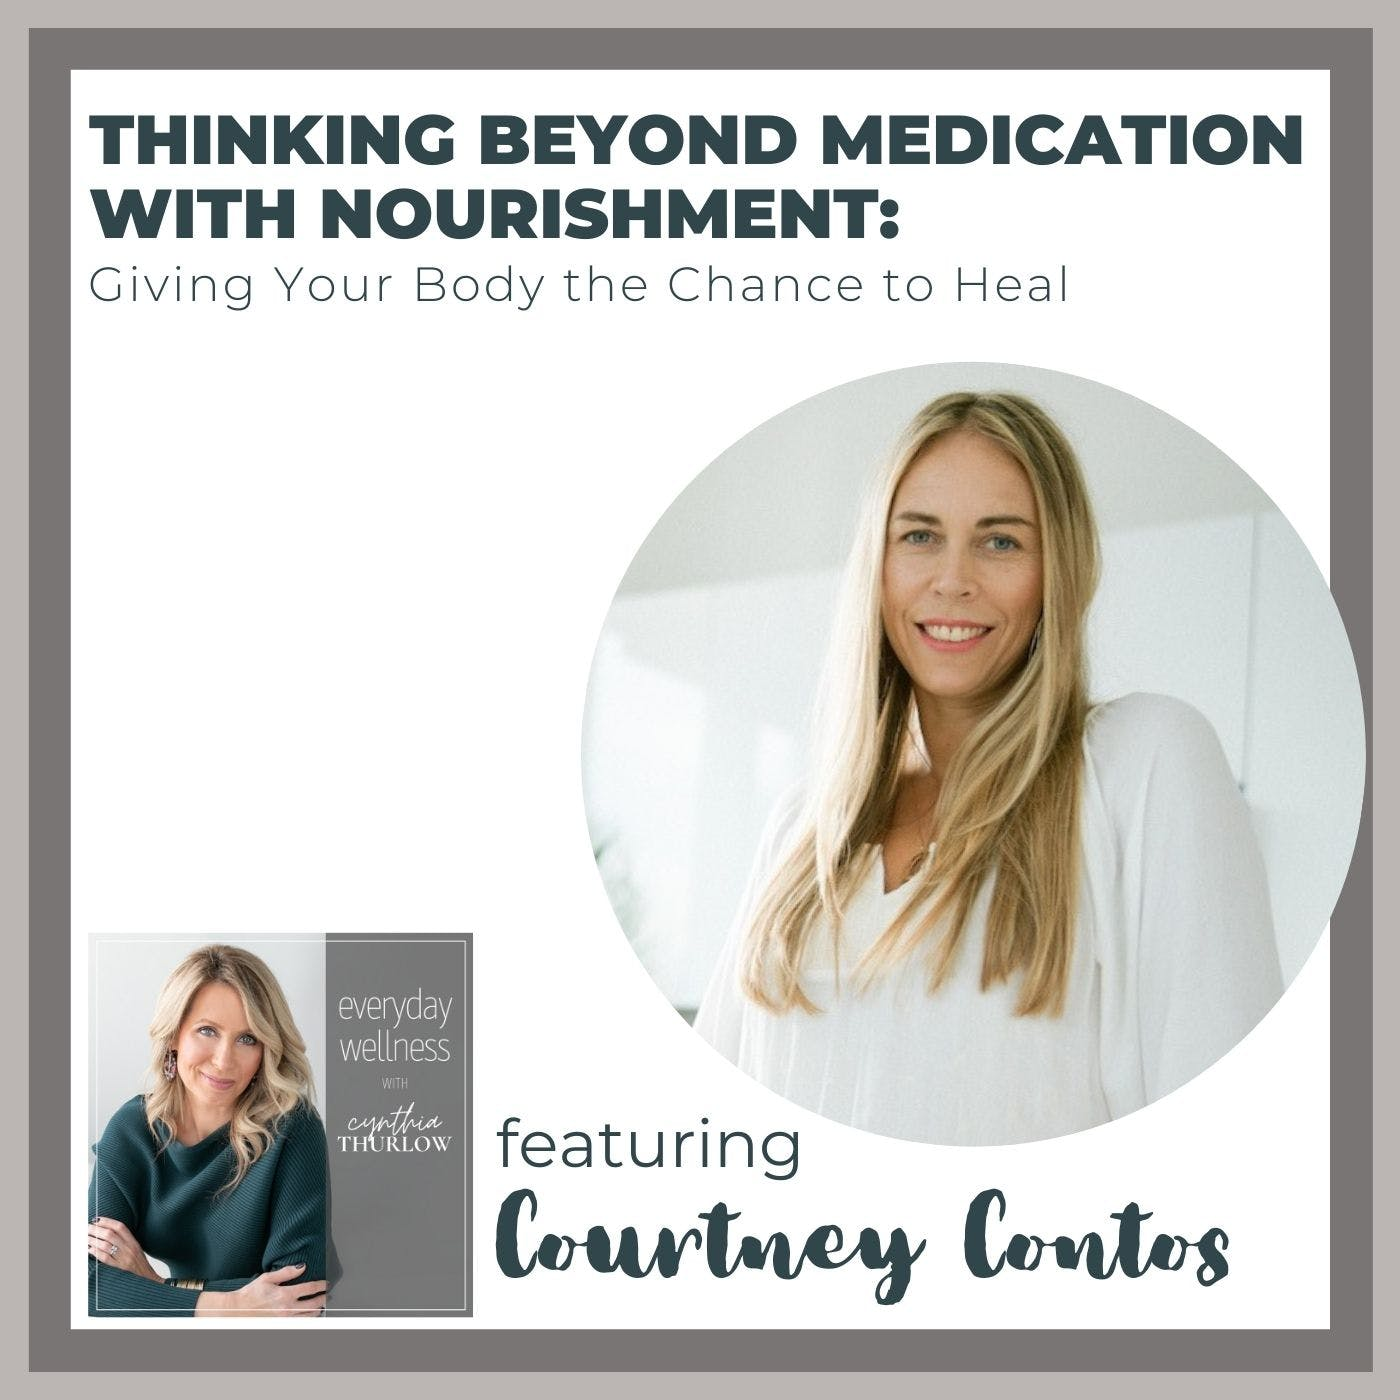 Ep. 170 Thinking Beyond Medication with Nourishment: Giving Your Body the Chance to Heal with Courtney Contos